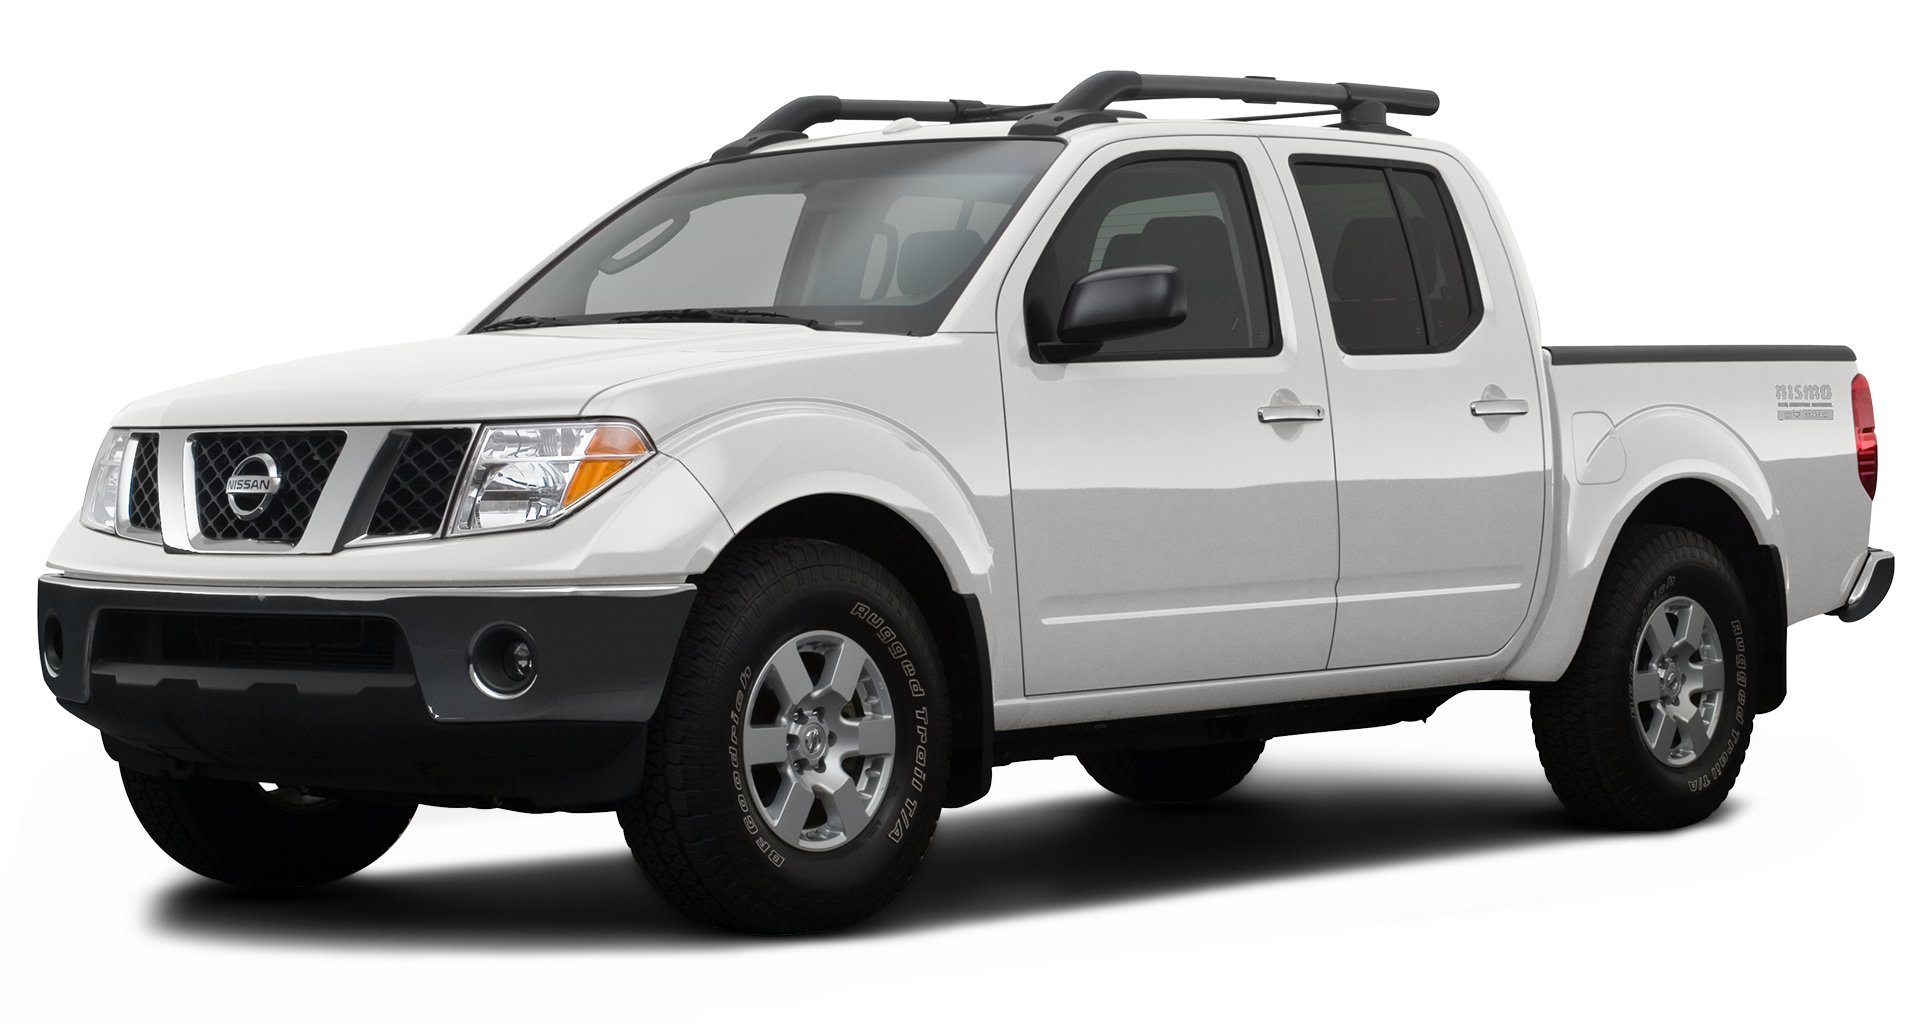 2008 nissan frontier reviews images and. Black Bedroom Furniture Sets. Home Design Ideas